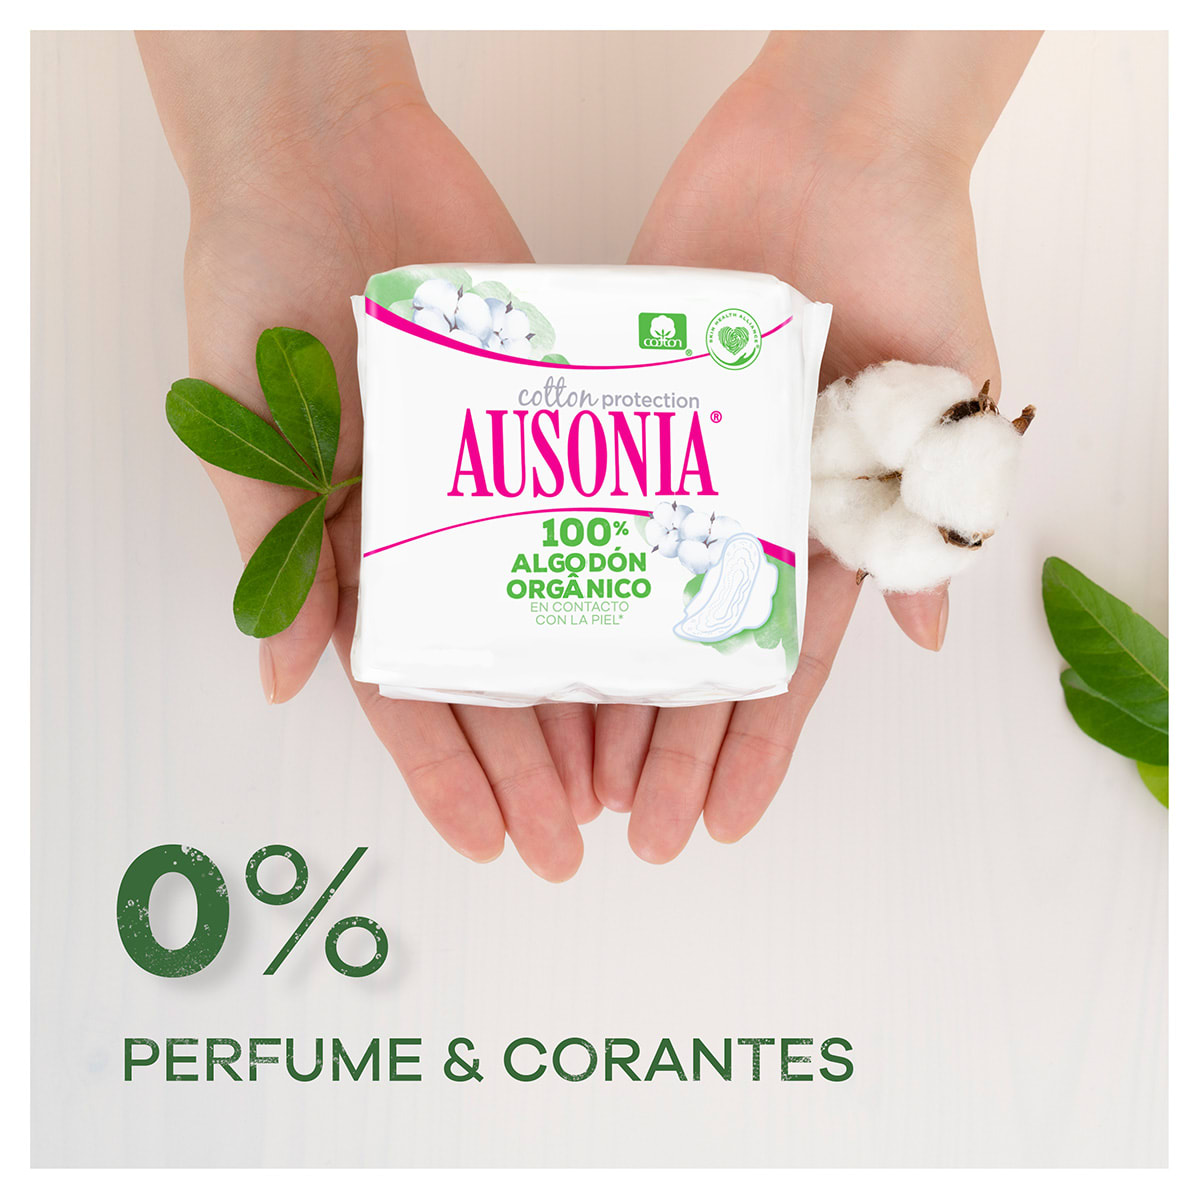 Ausonia Cotton Protection